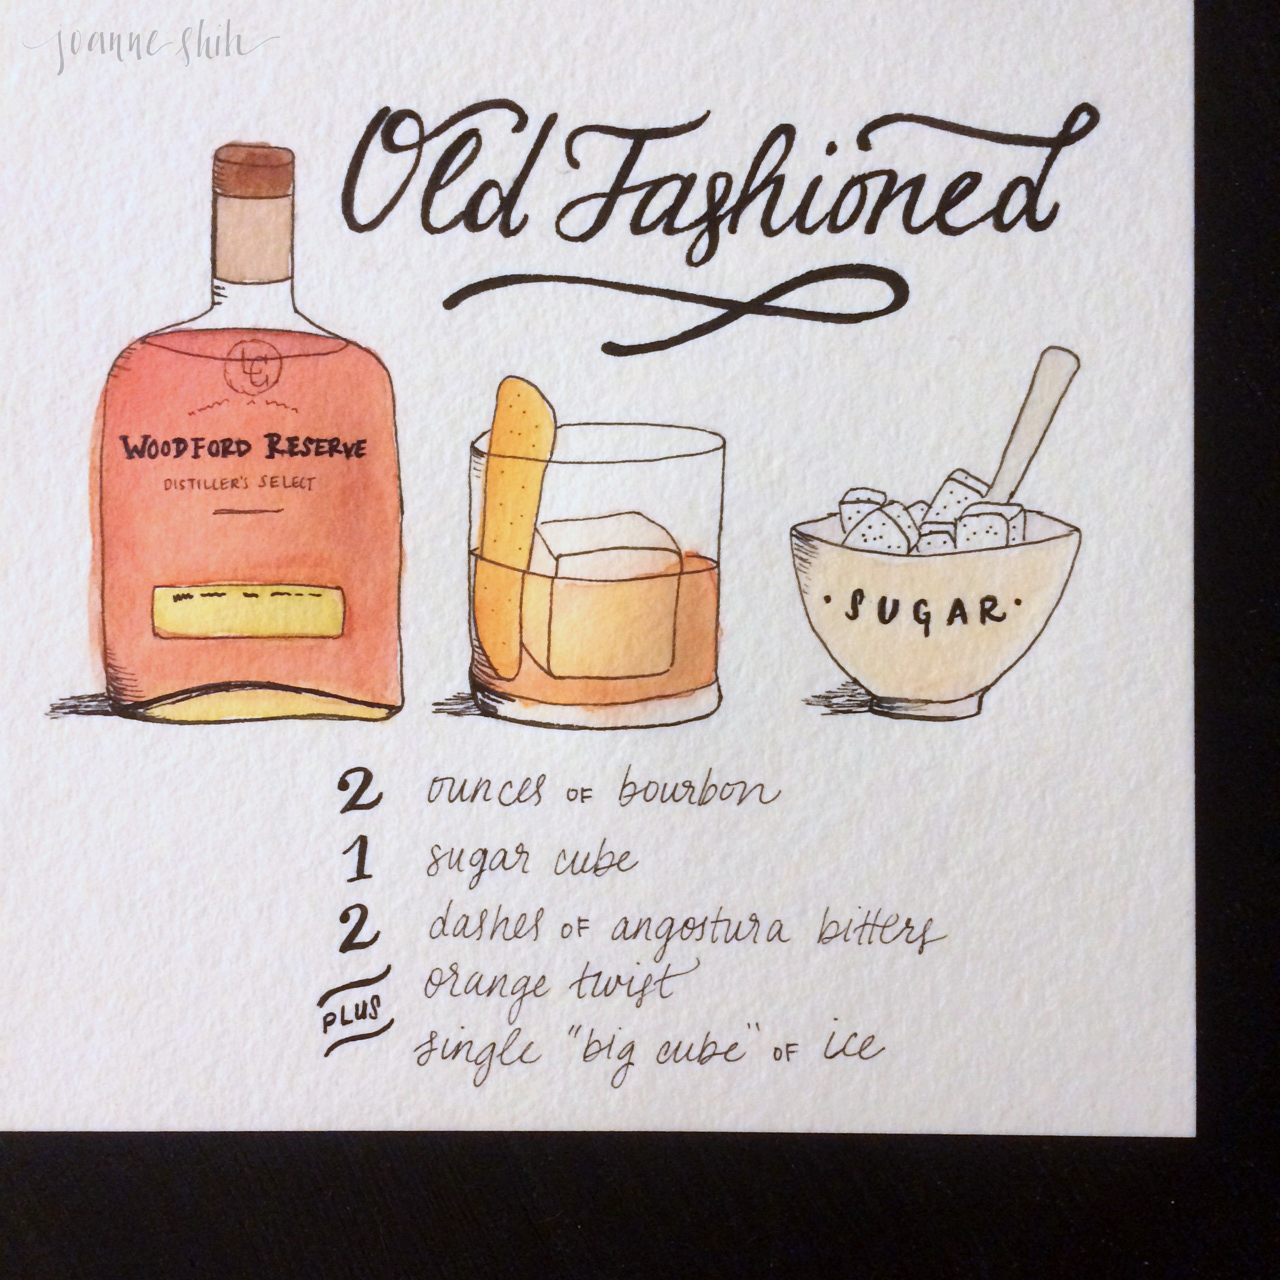 day-166-old-fashioned.jpg